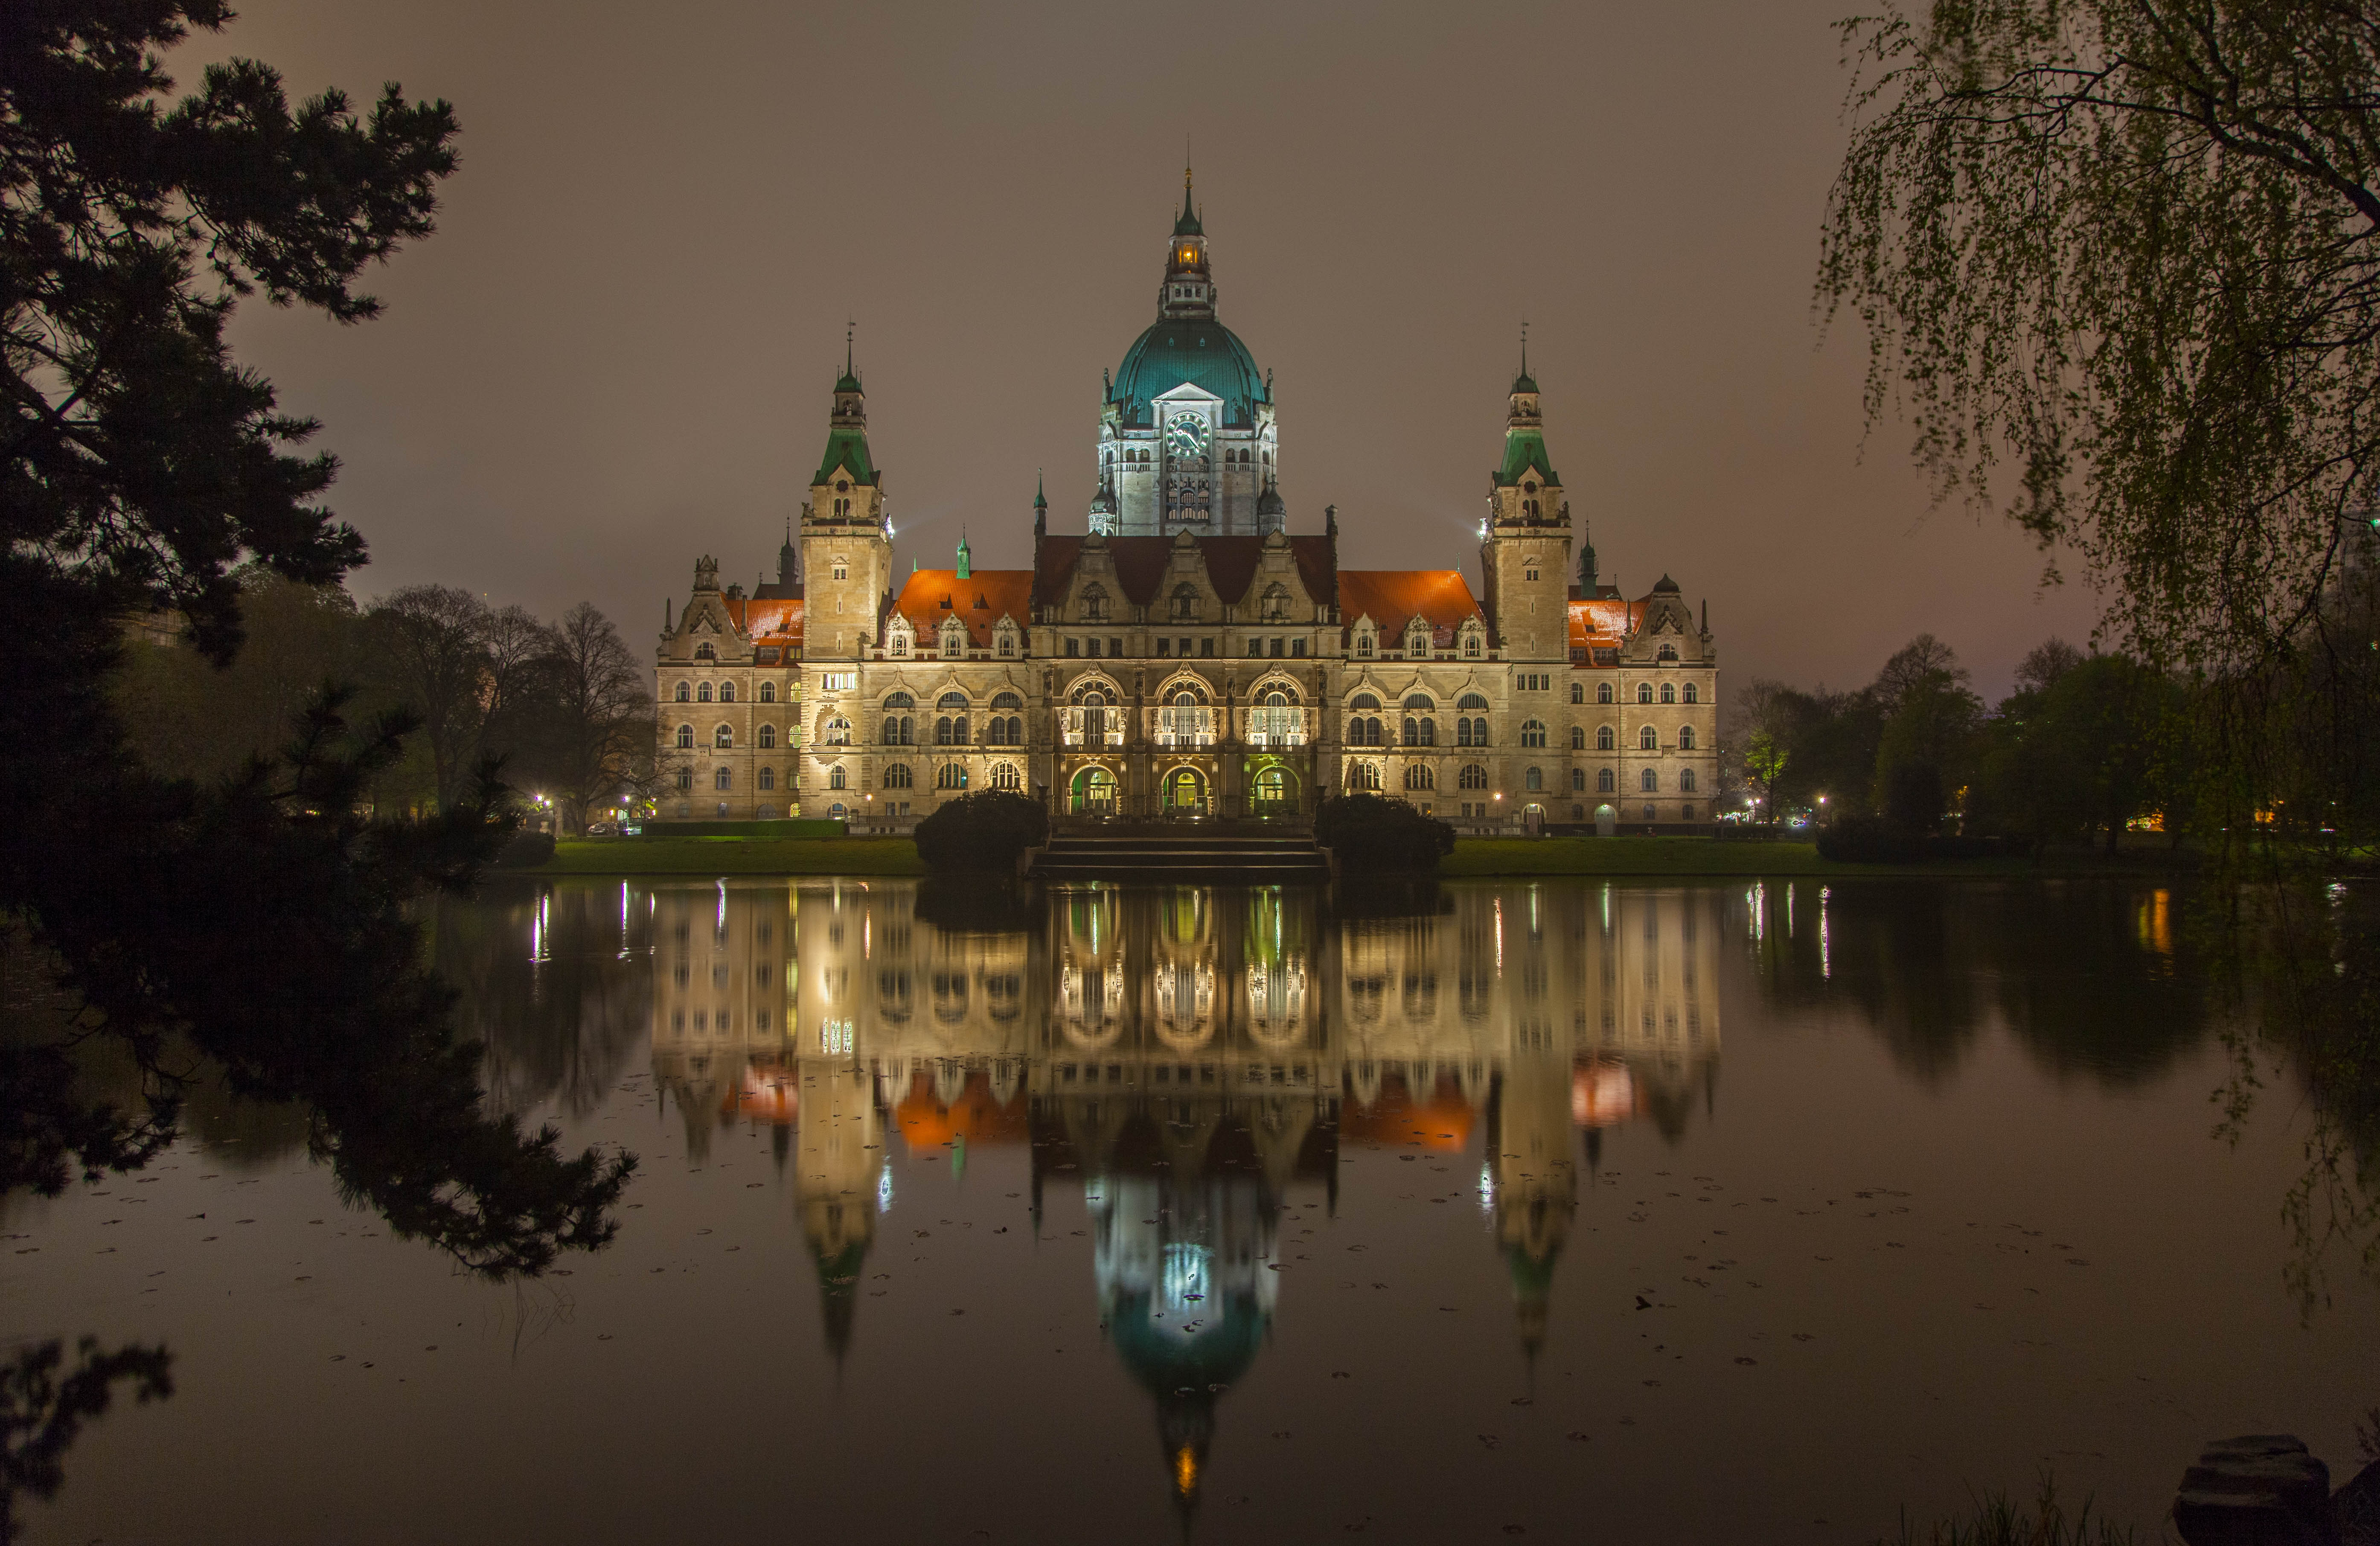 Usm Hannover file hannover neues rathaus bei nacht jpg wikimedia commons